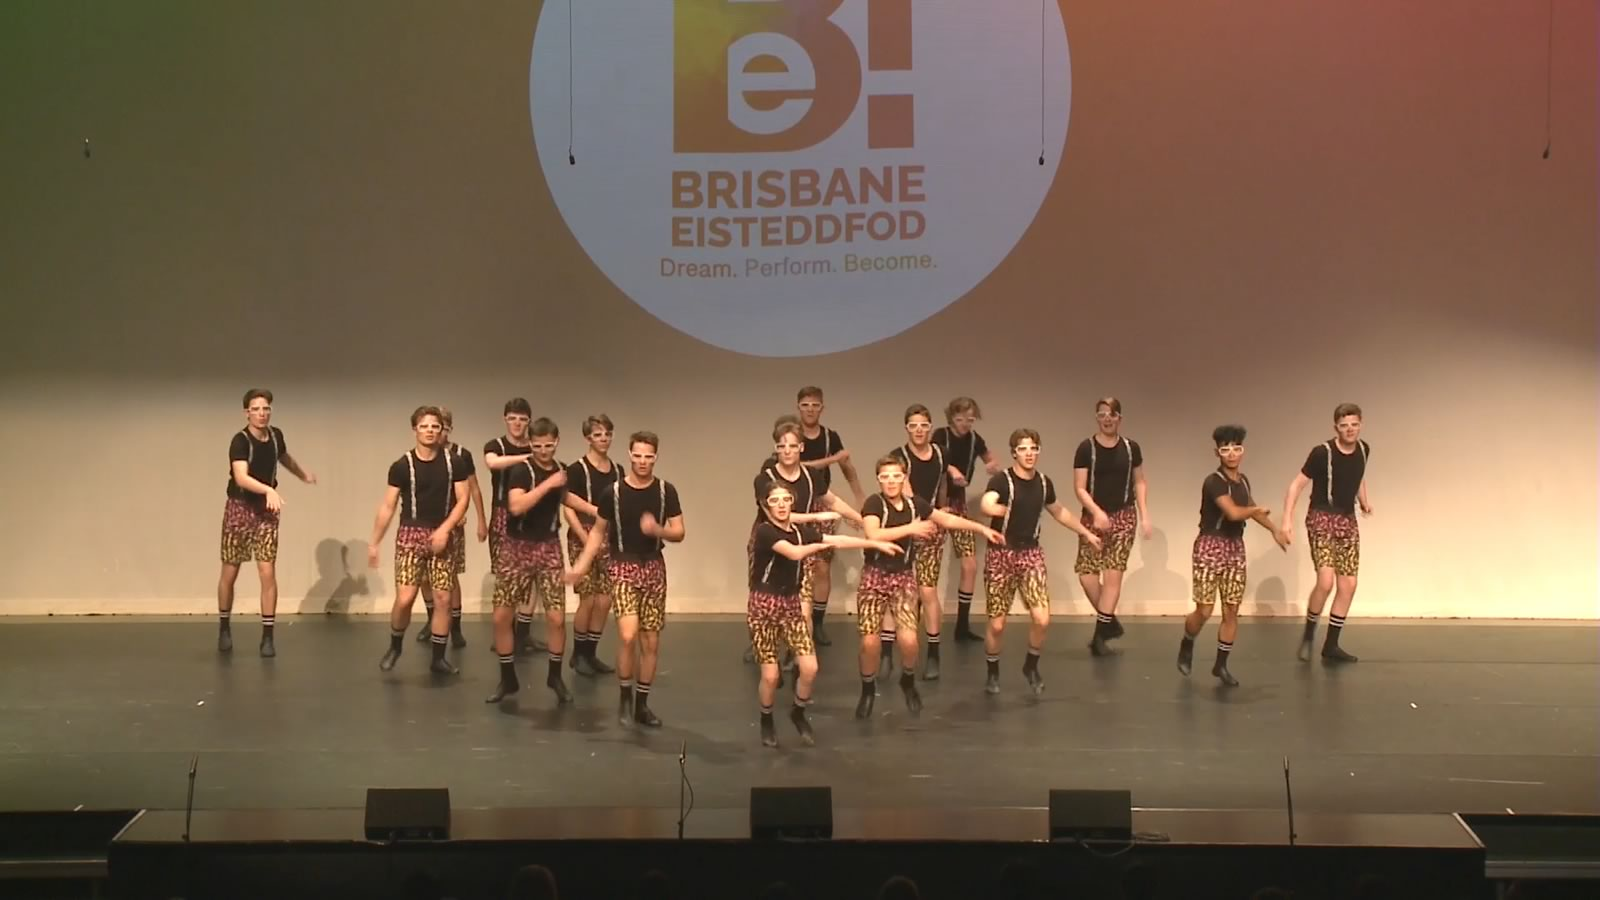 Senior Dance Troupe at the Brisbane Eisteddfod 2019